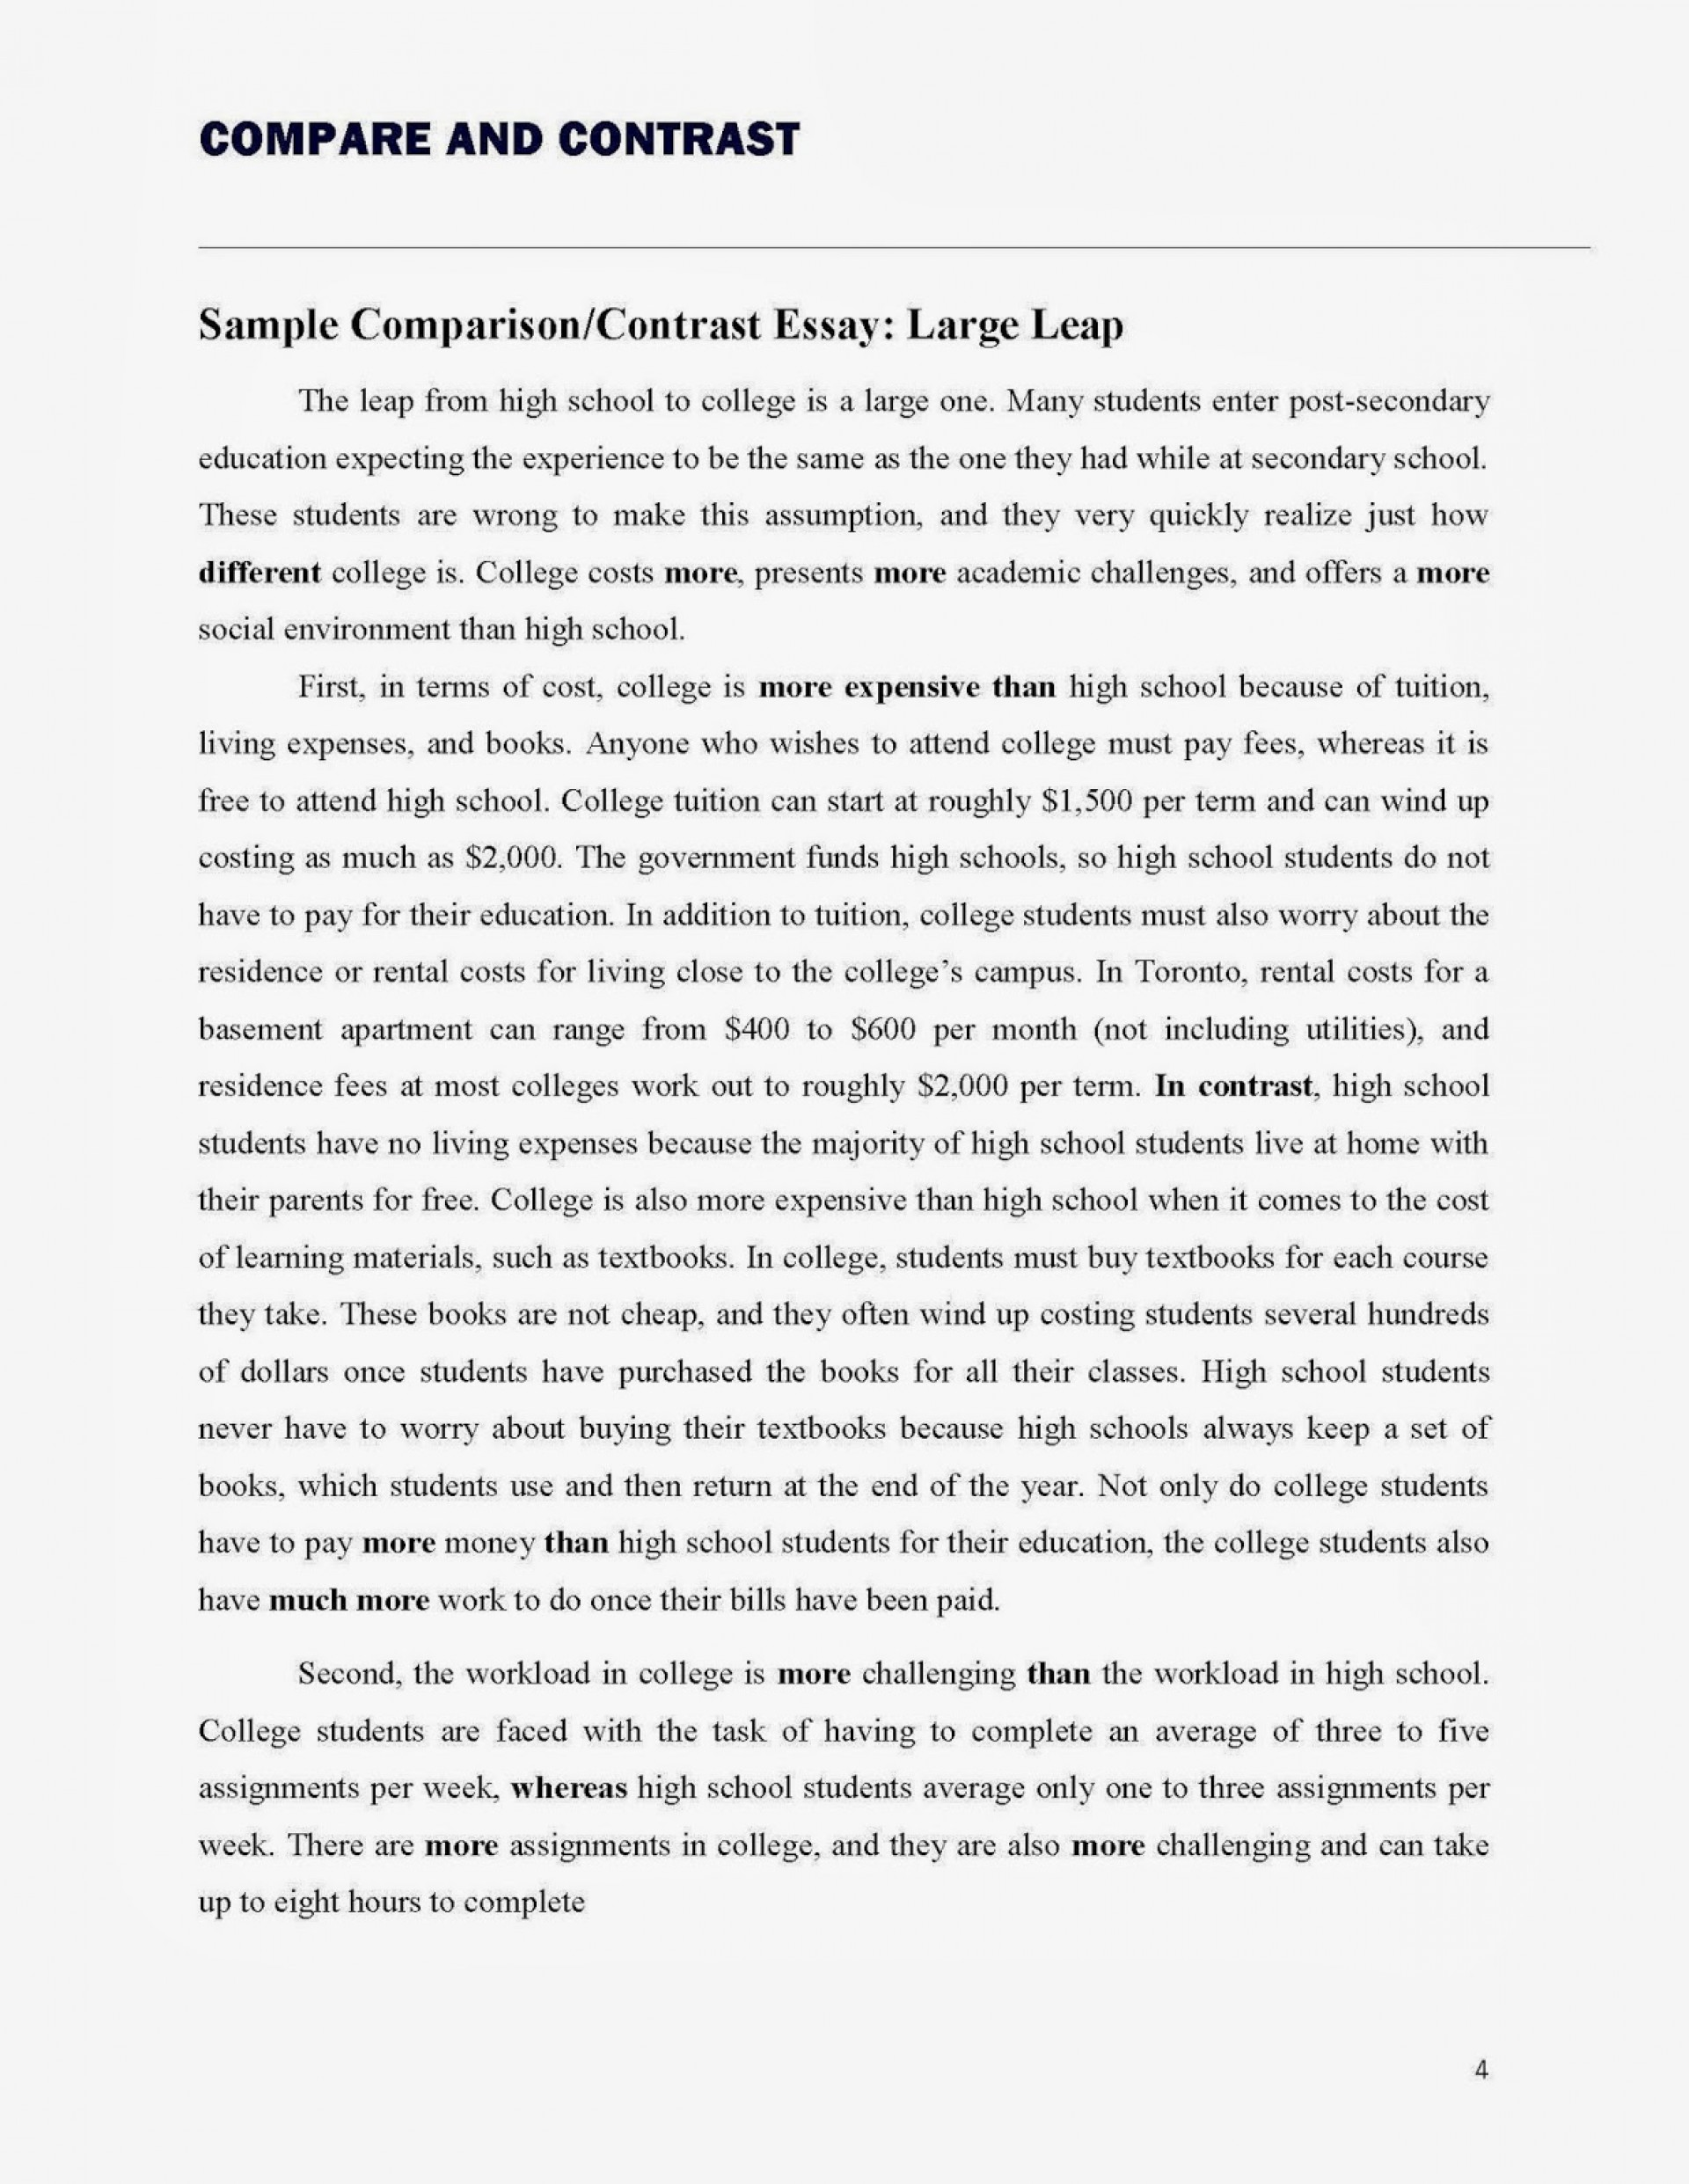 011 Compare And Contrast Essay Compareandcontrastessay Page 4h125 Frightening Topics For College Students Rubric 4th Grade Ideas 7th 1920